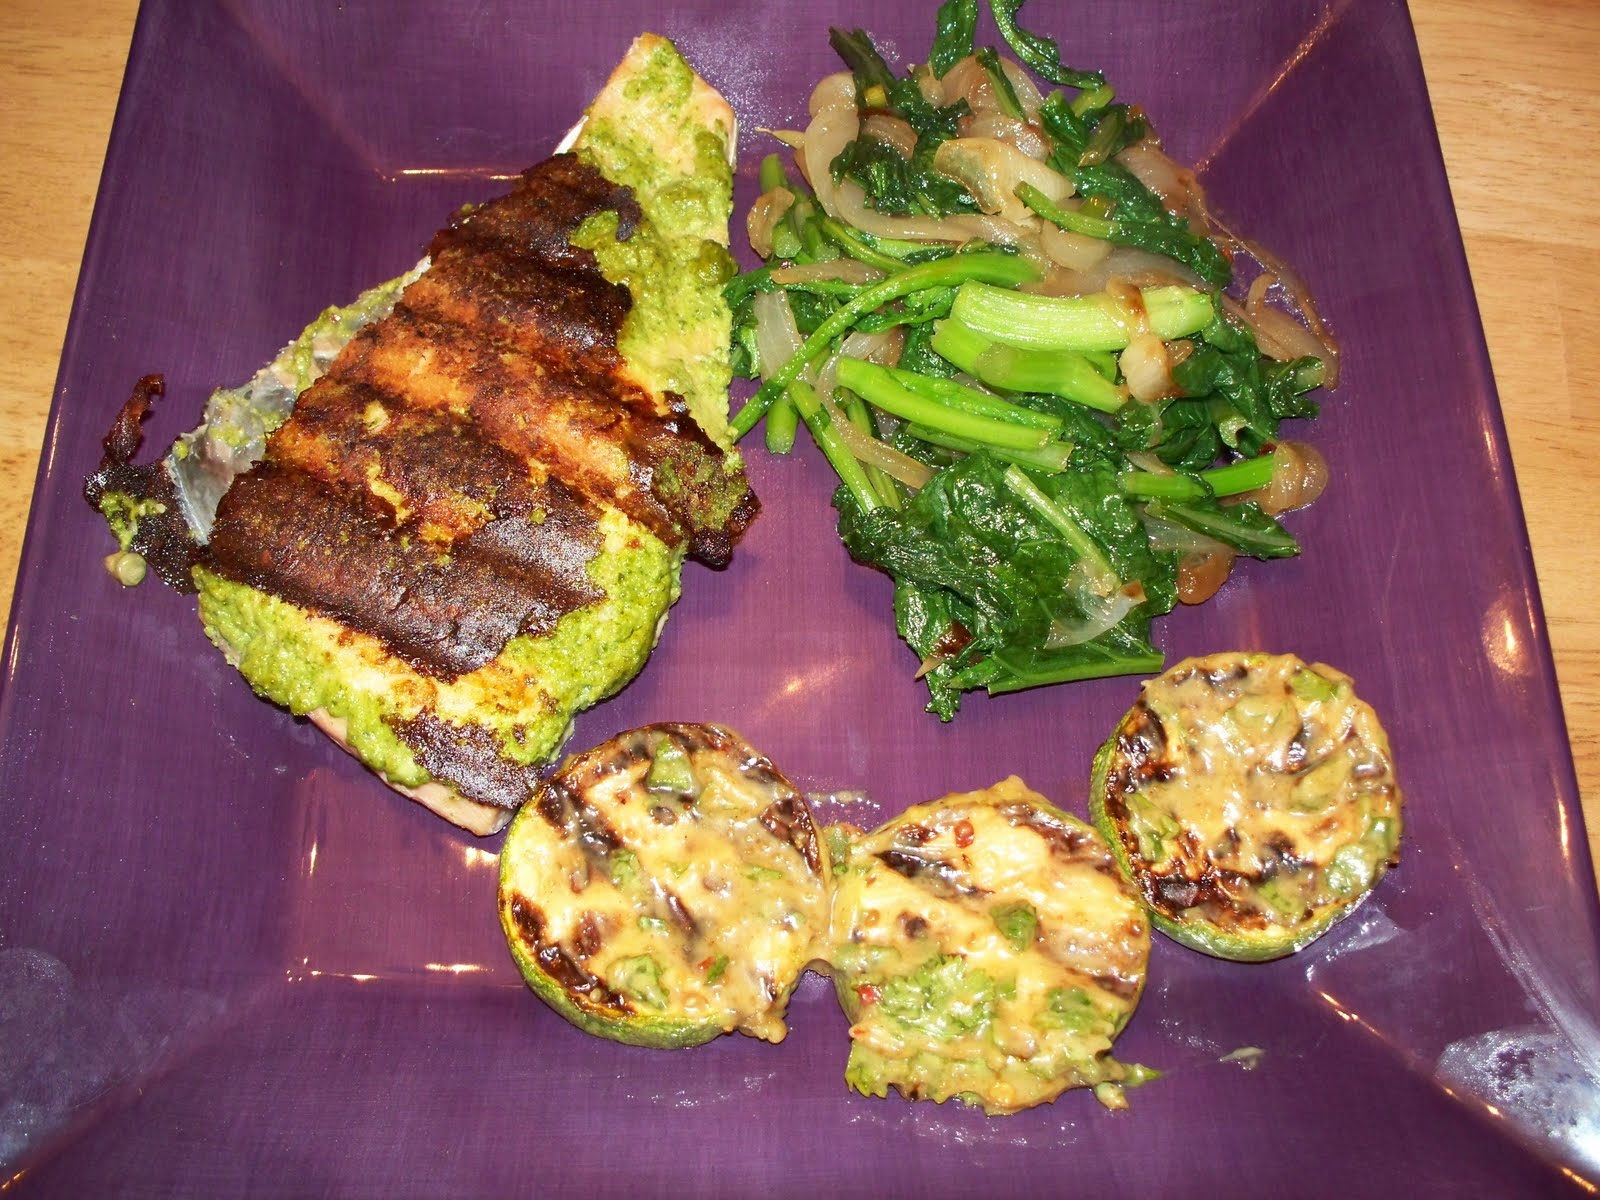 ... Sides – Grilled Lita, Broccoli Rabe with Caramelized Onions, Salad